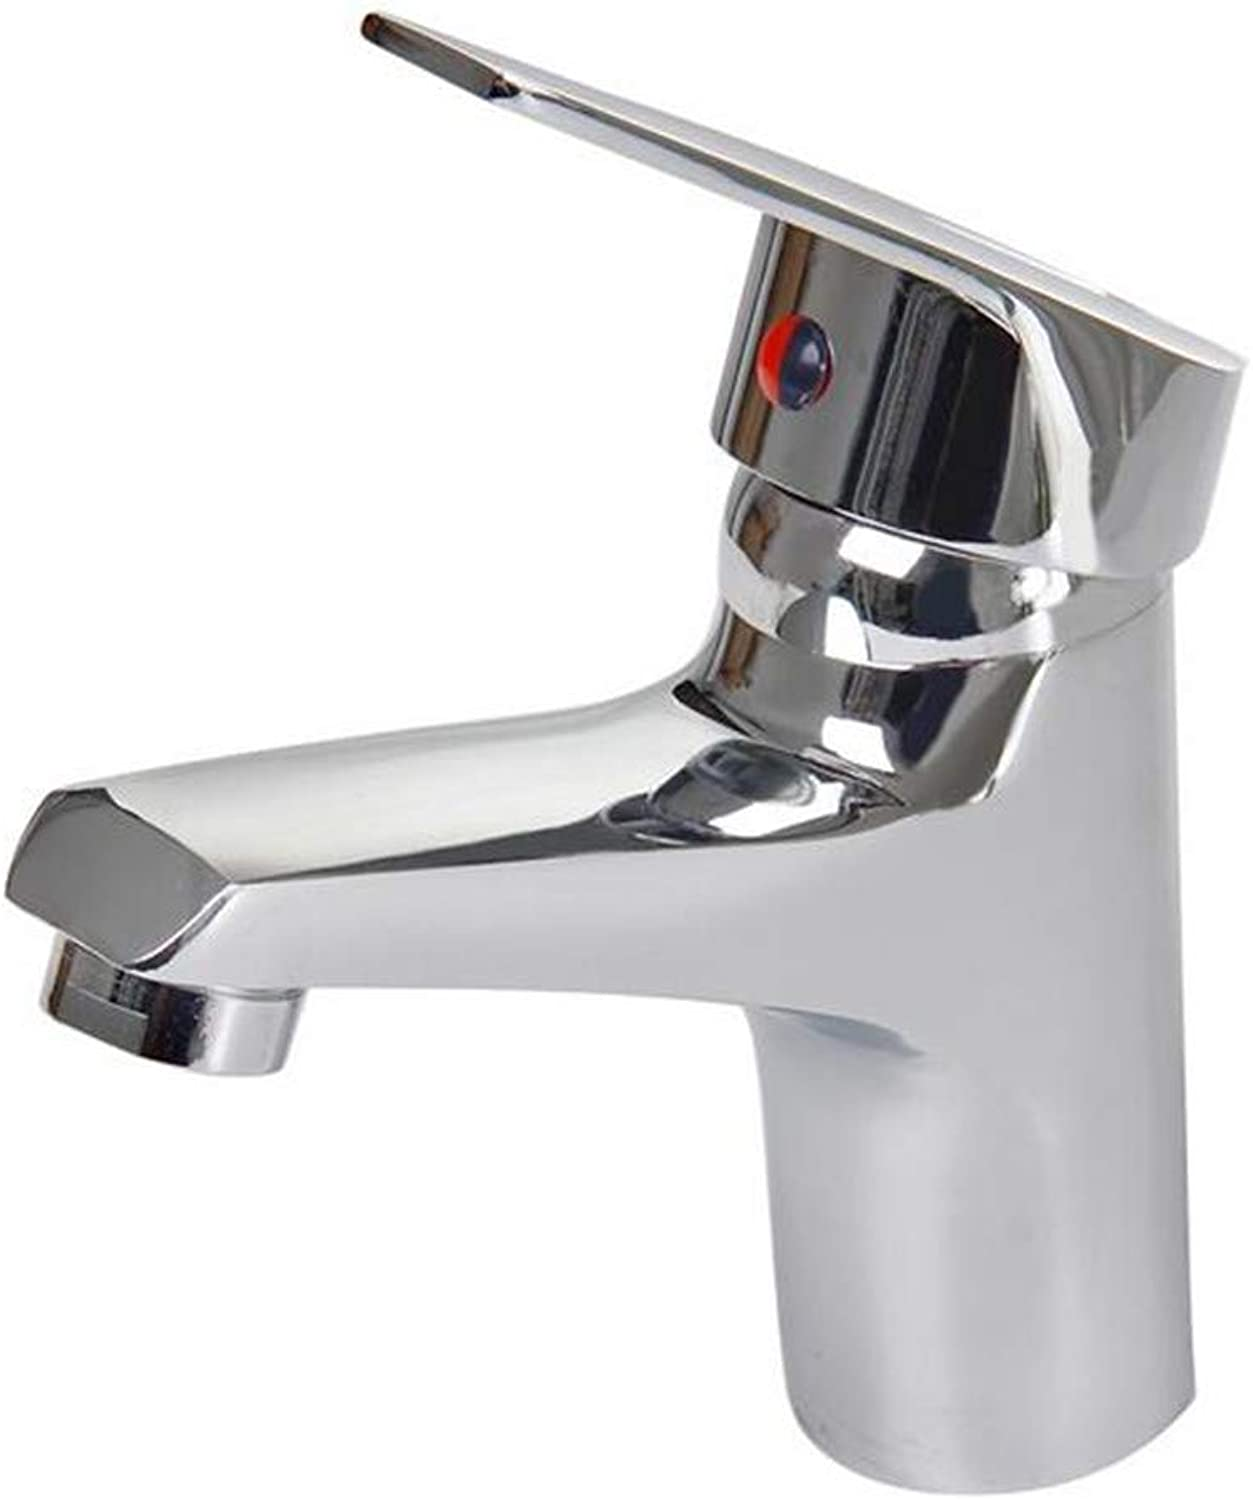 Basin Faucet Bathroom Sink Faucet Athroom Faucet Waterfall Basin Tap Cold and Hot Mixer Water Tap Kitchen Faucet Bathroom